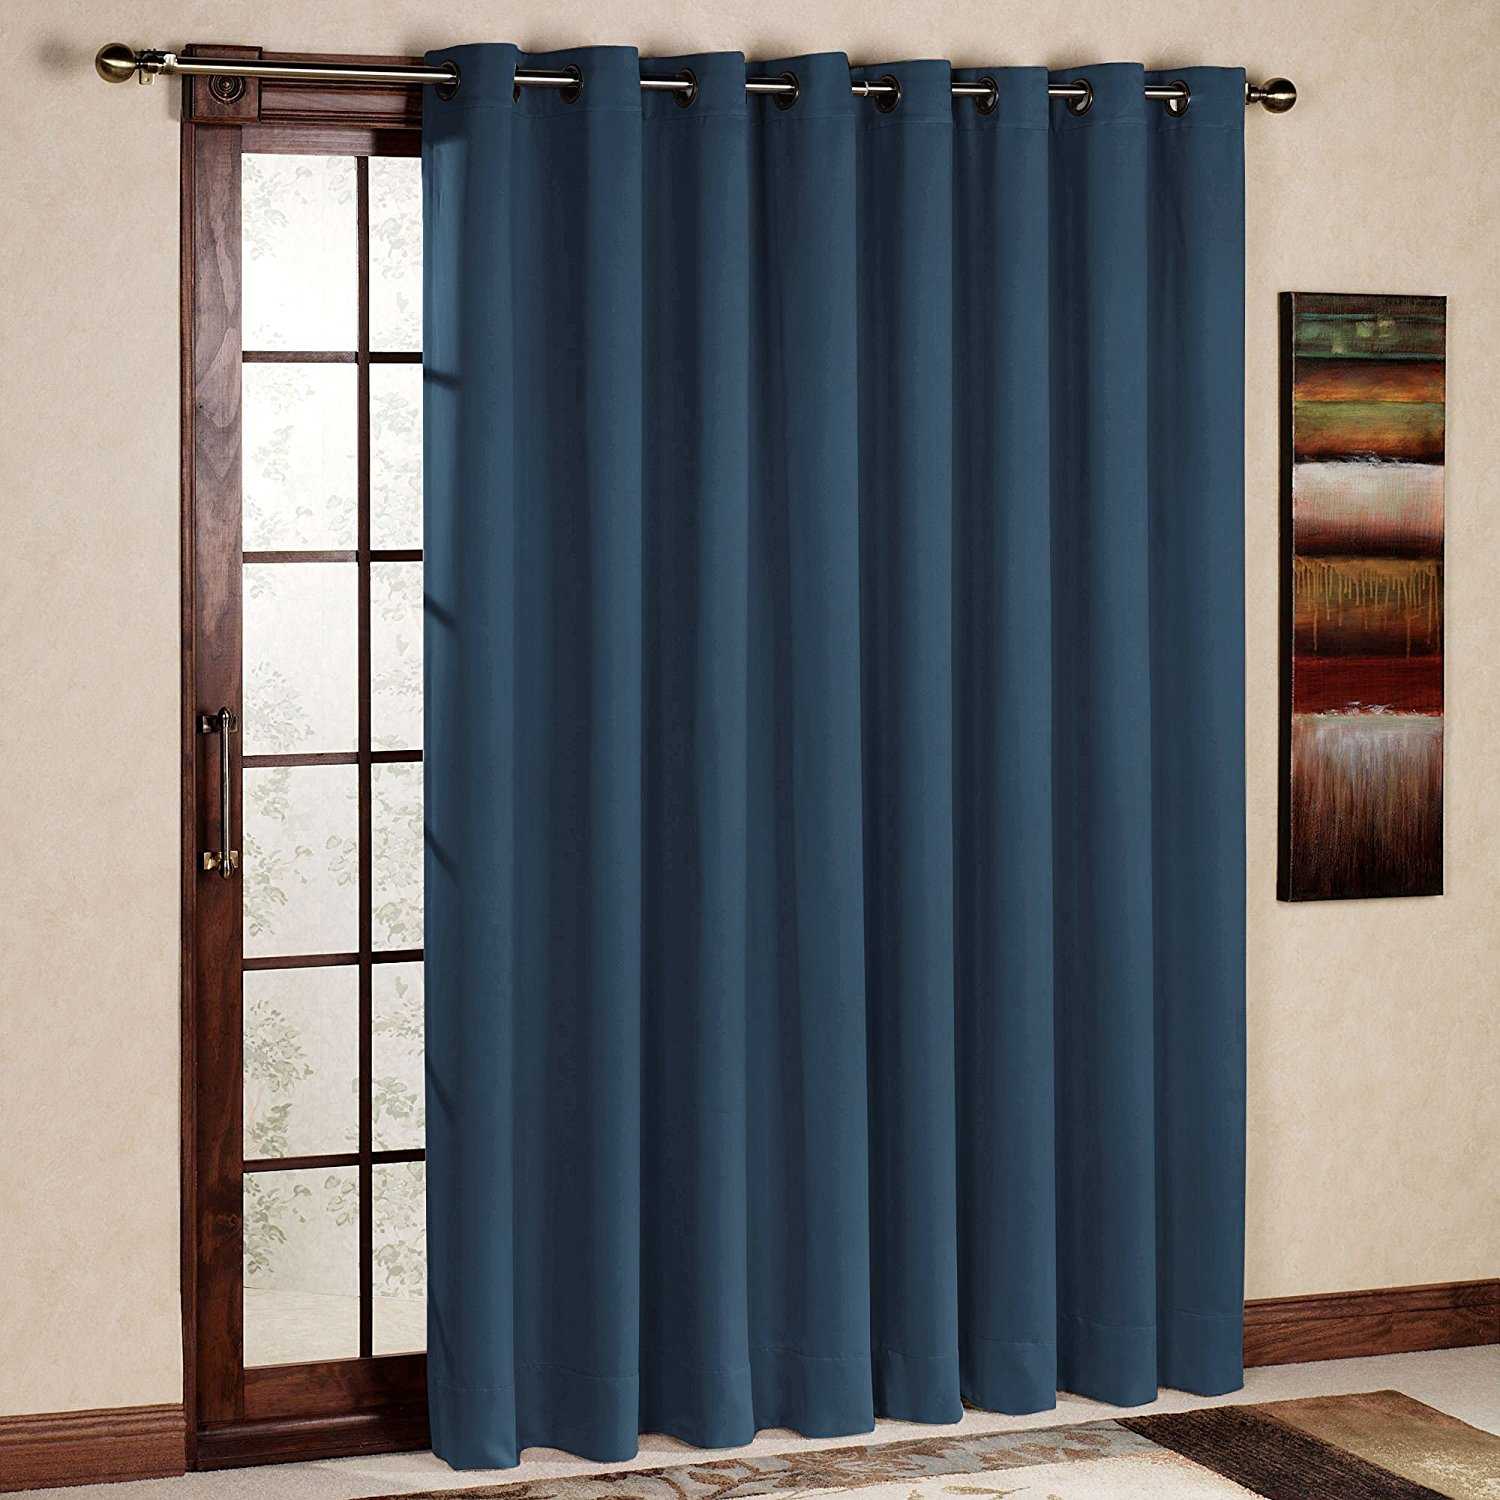 RHF-Wide-Thermal-Blackout-Patio-door-Curtain-Panel-Sliding-door-curtains-Antique-Bronze-Grommet-Top-